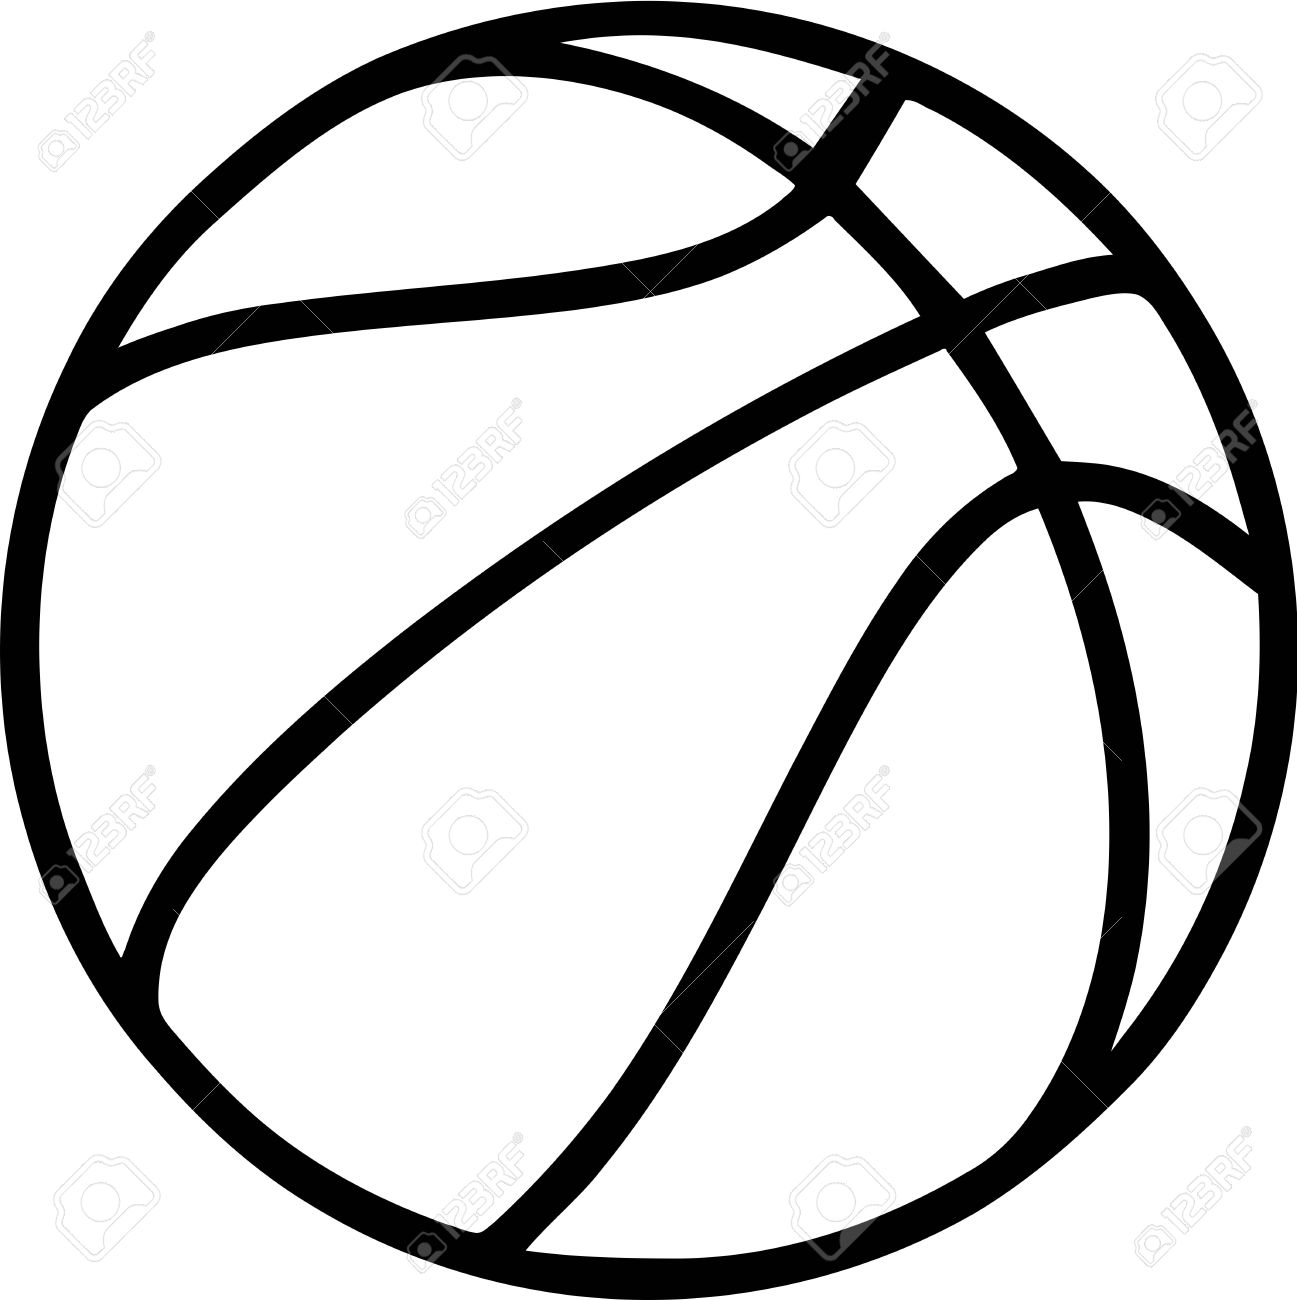 basketball outline on white background royalty free cliparts rh 123rf com basketball vector clipart basketball vector logo